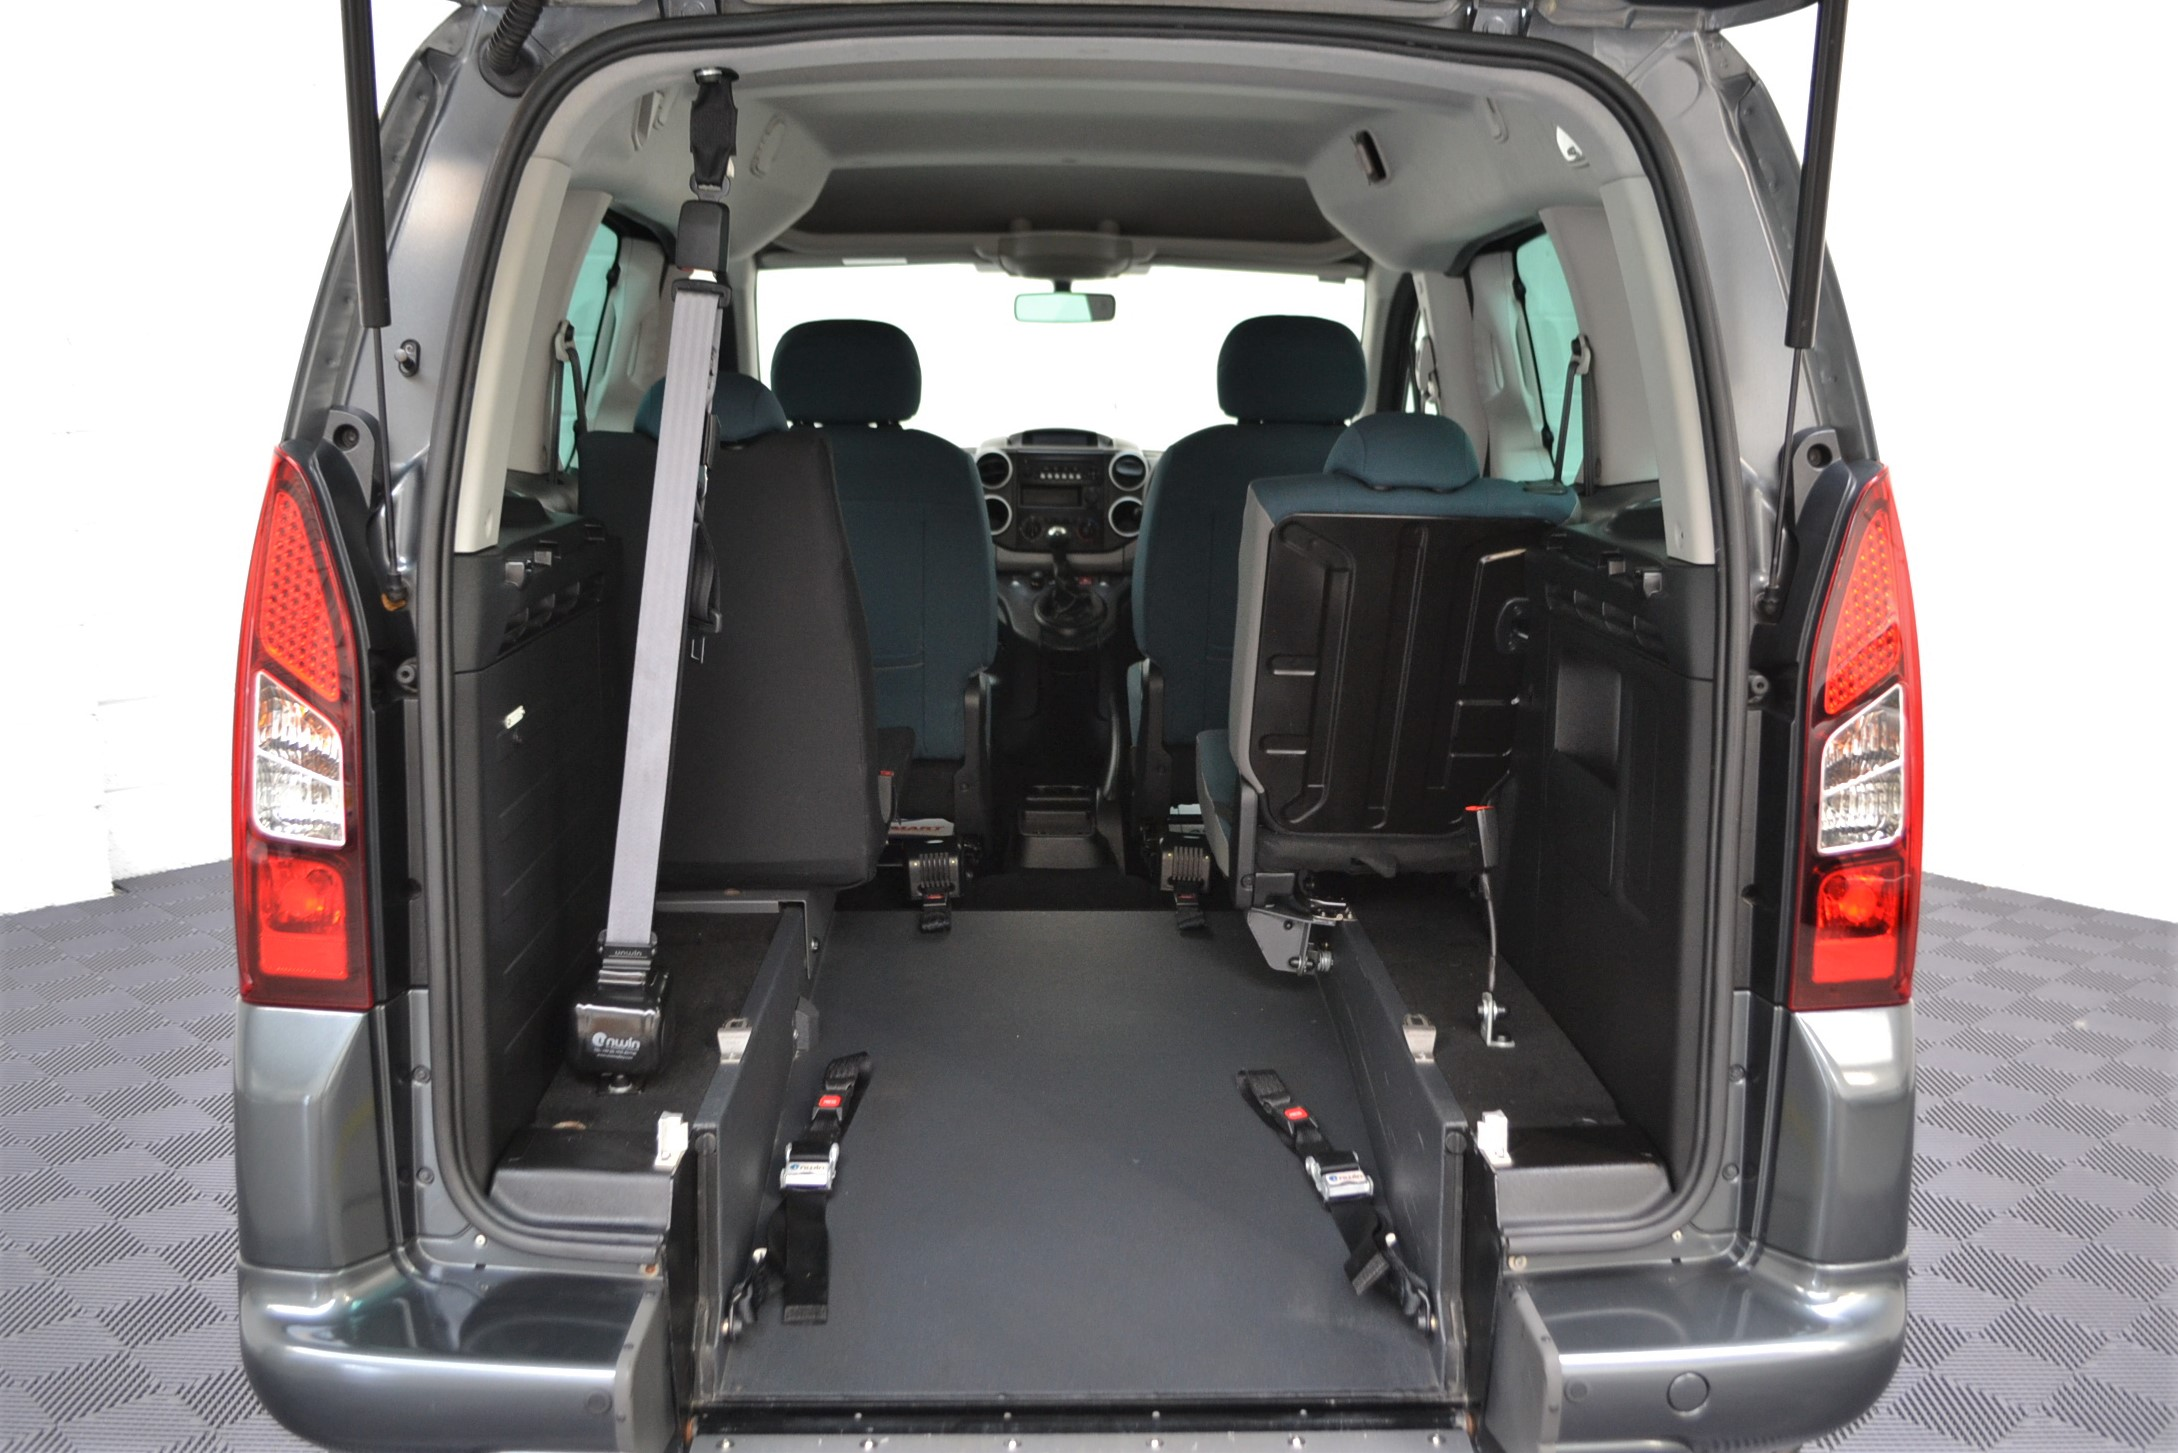 Disabled Cars For Sale Bristol Wheelchair Accessible Vehicles Used For Sale Somerset Devon Dorset Bath Peugeot Partner WA68 EVU 13